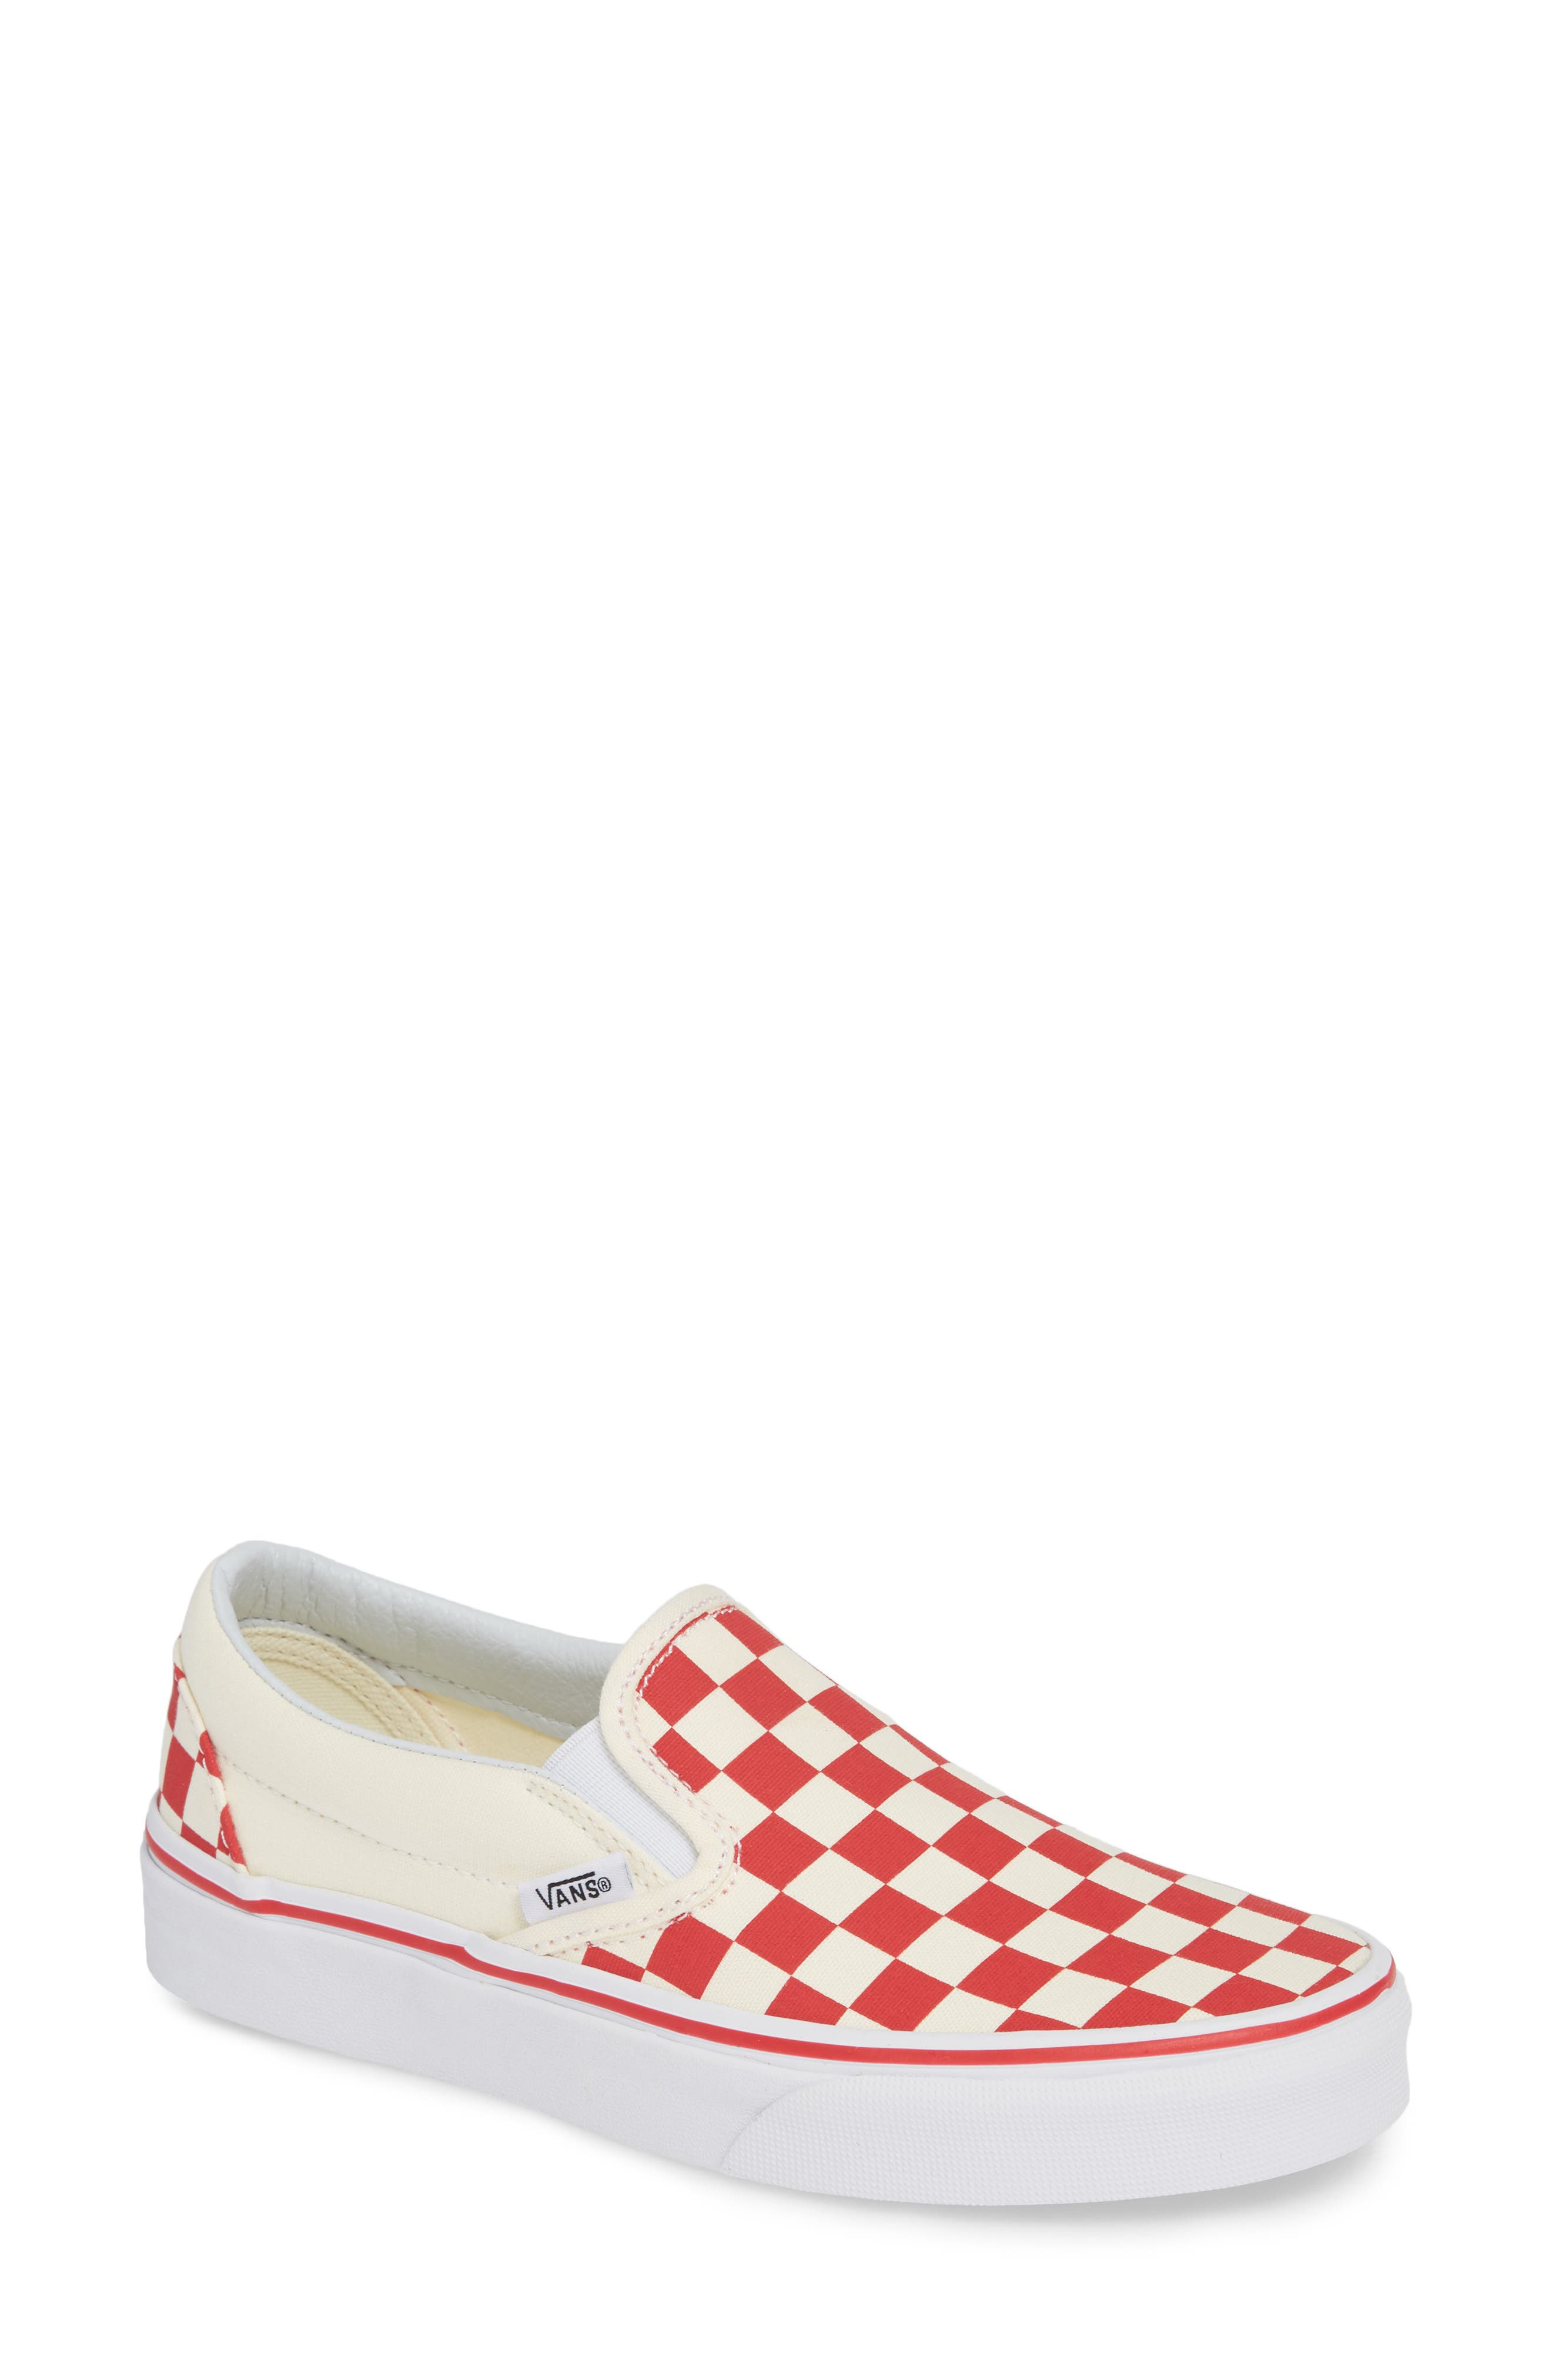 VANS, 'Classic' Slip-On, Main thumbnail 1, color, RACING RED/ WHITE